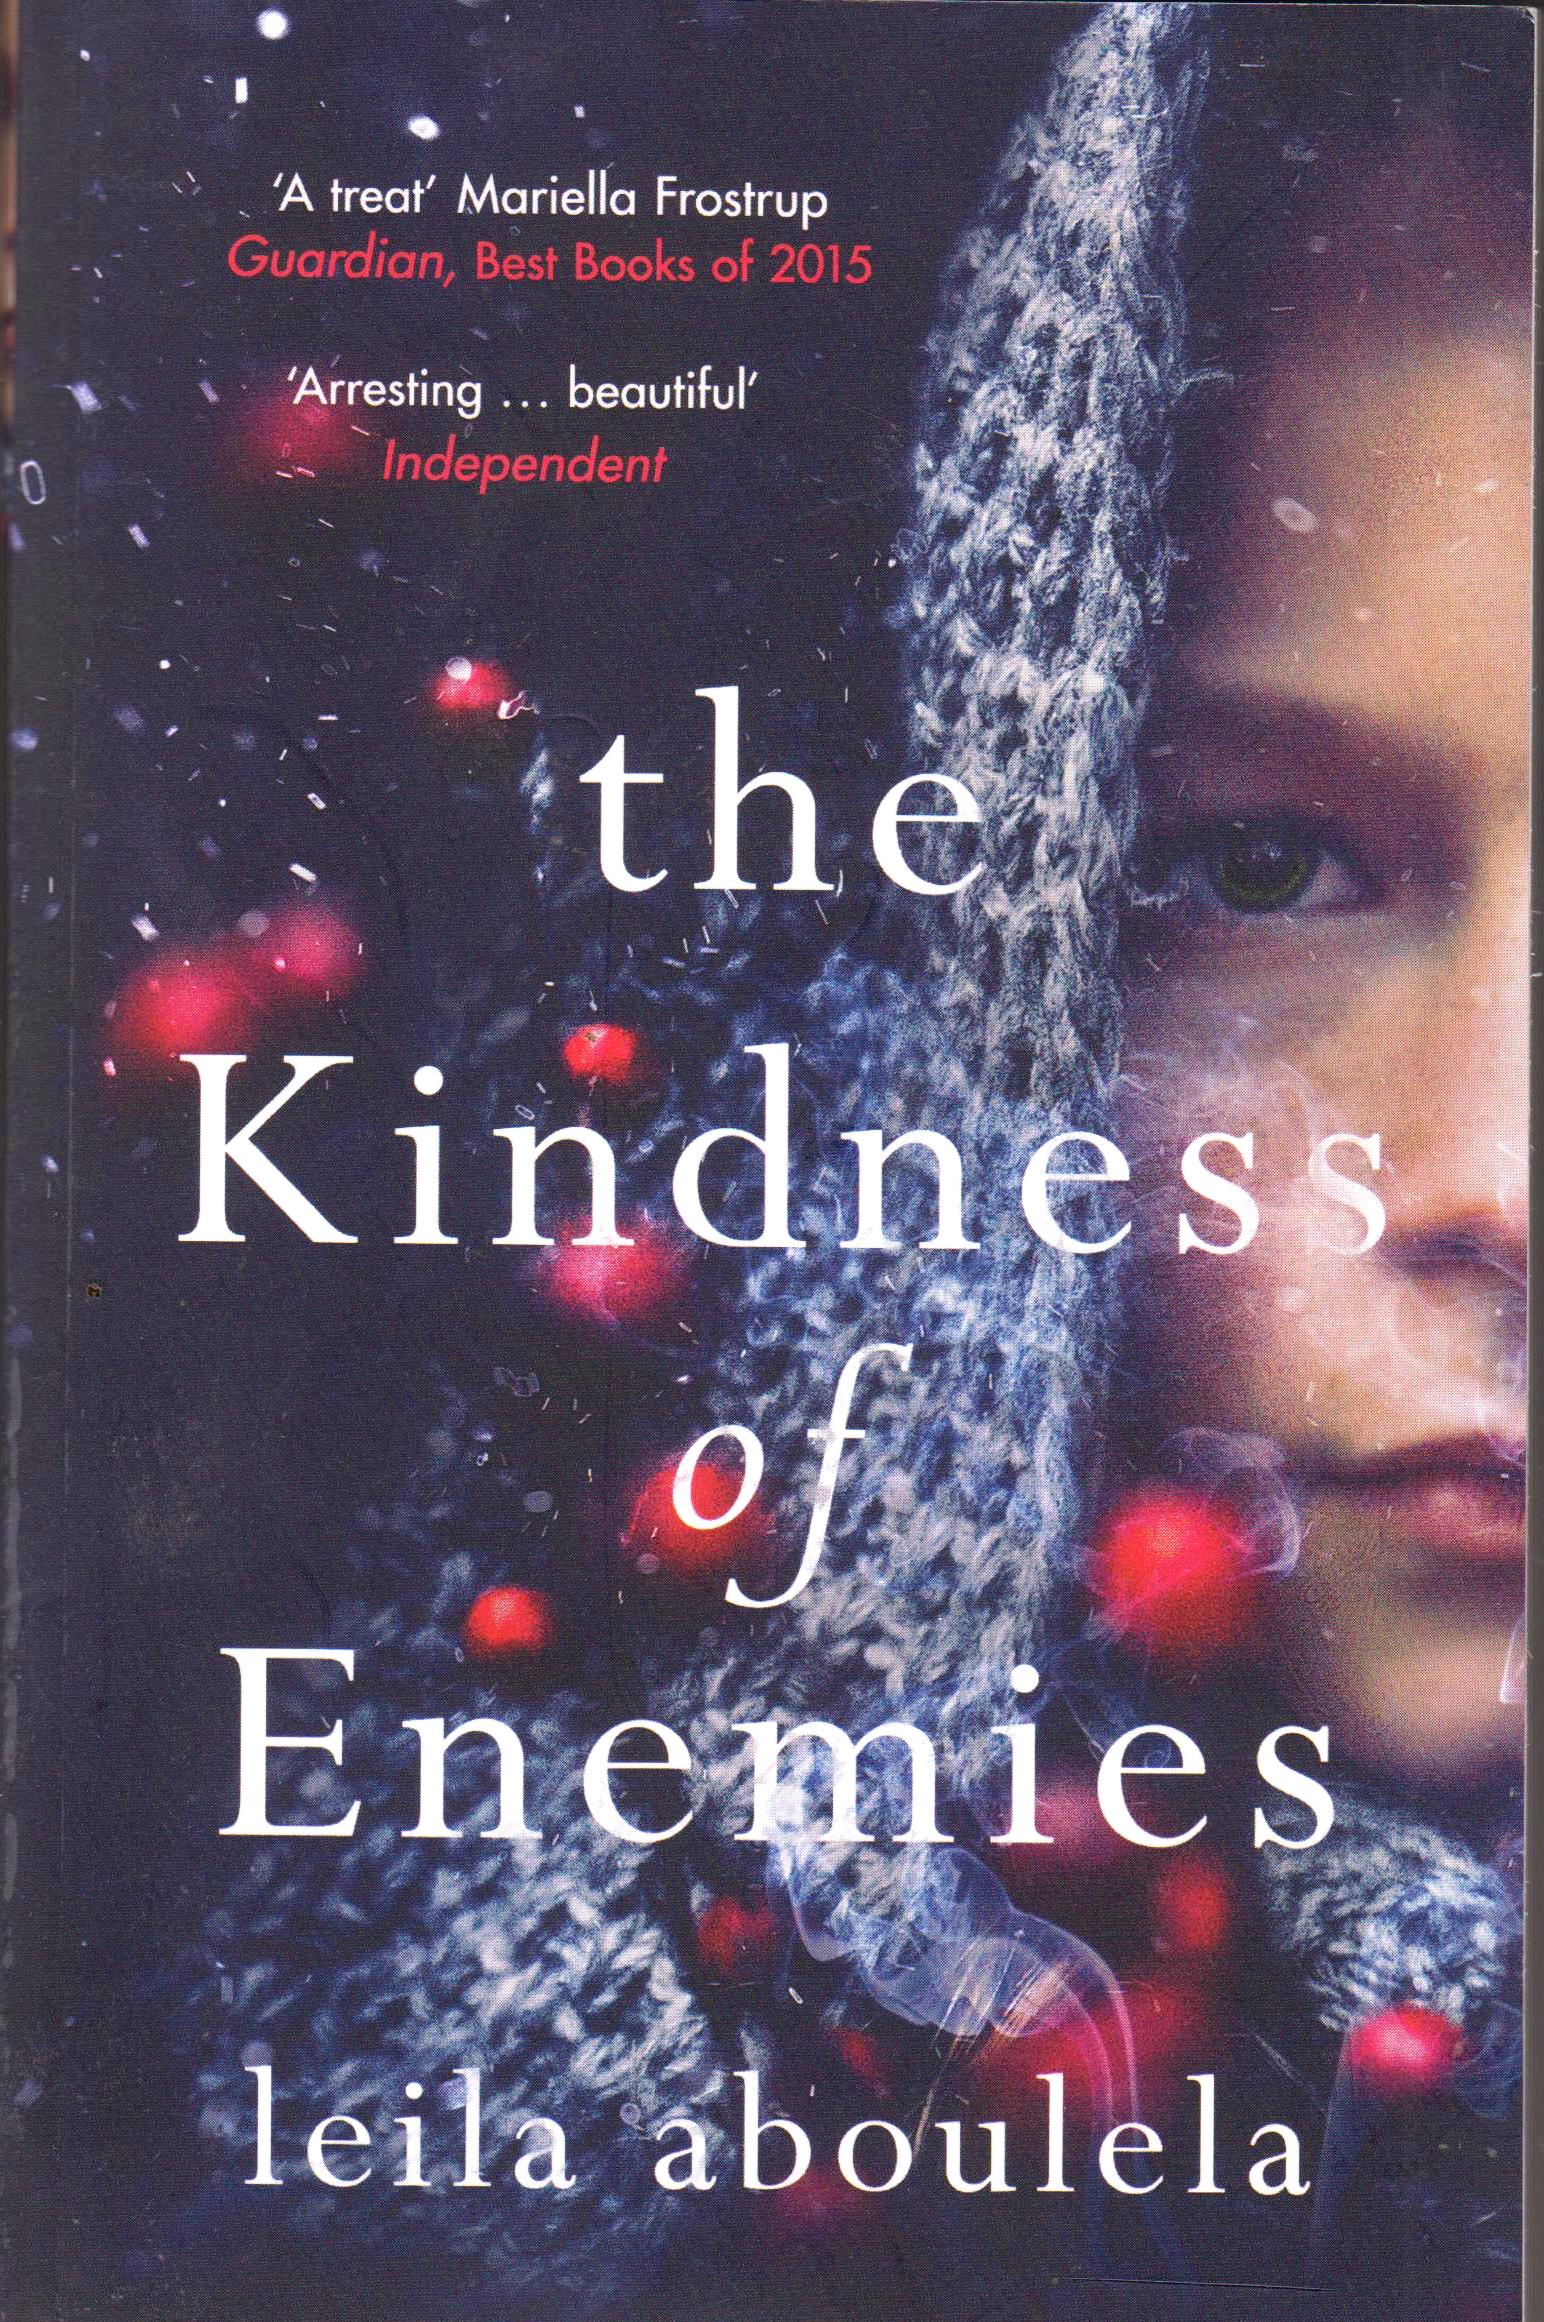 The Kindness of Enemies by Leila Aboulela - United Kingdom